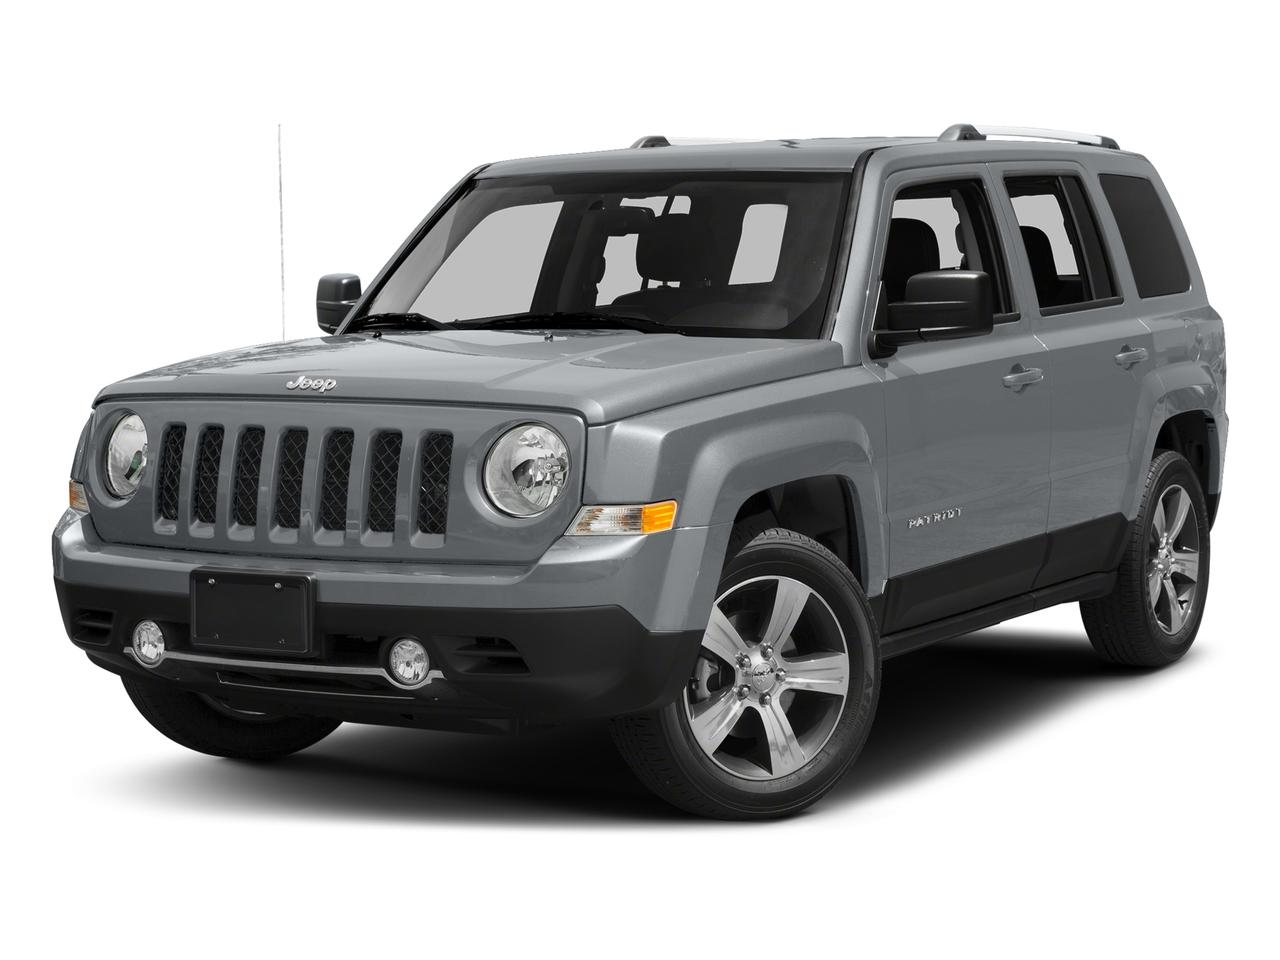 2017 Jeep Patriot Vehicle Photo in Beaufort, SC 29906